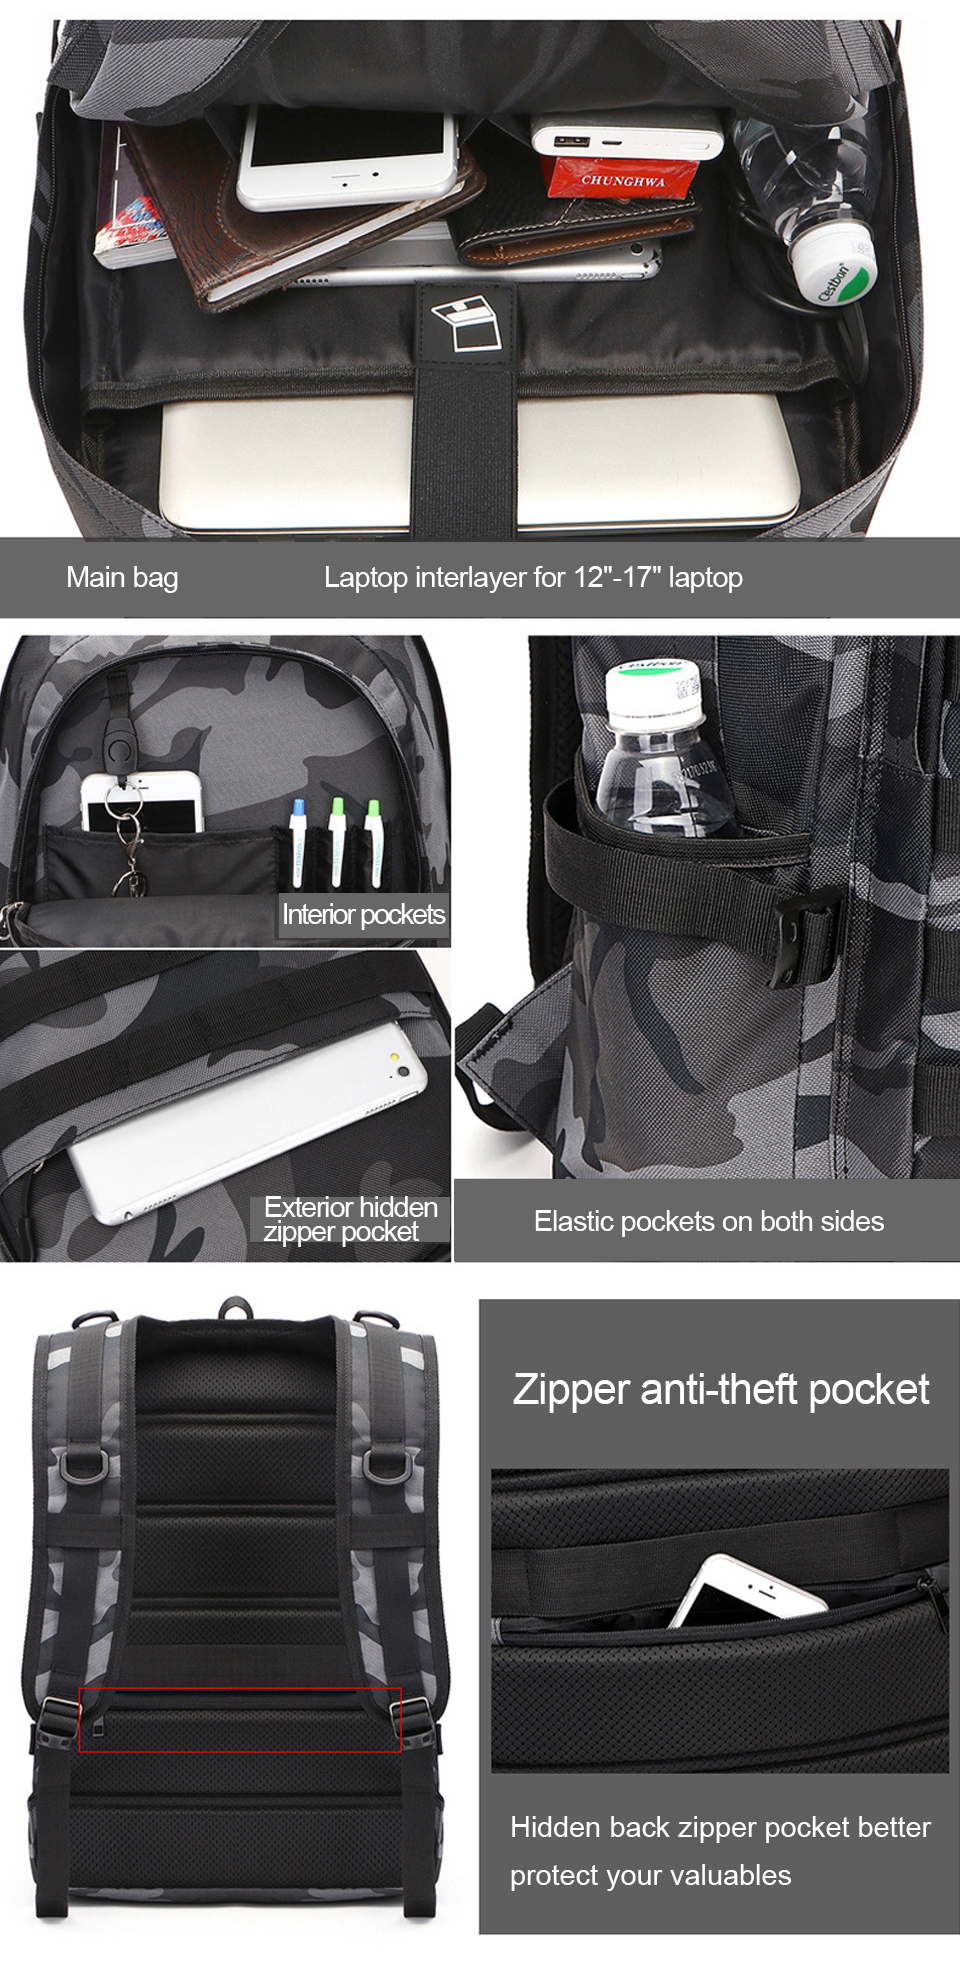 Outdoor-Backpack-Men-Laptop-17''-15.6''-Backpacks-Military-Tactical-Assault-Backpacking-Female-Large-Capacity-Male-PUBG-Bag-Pack_07